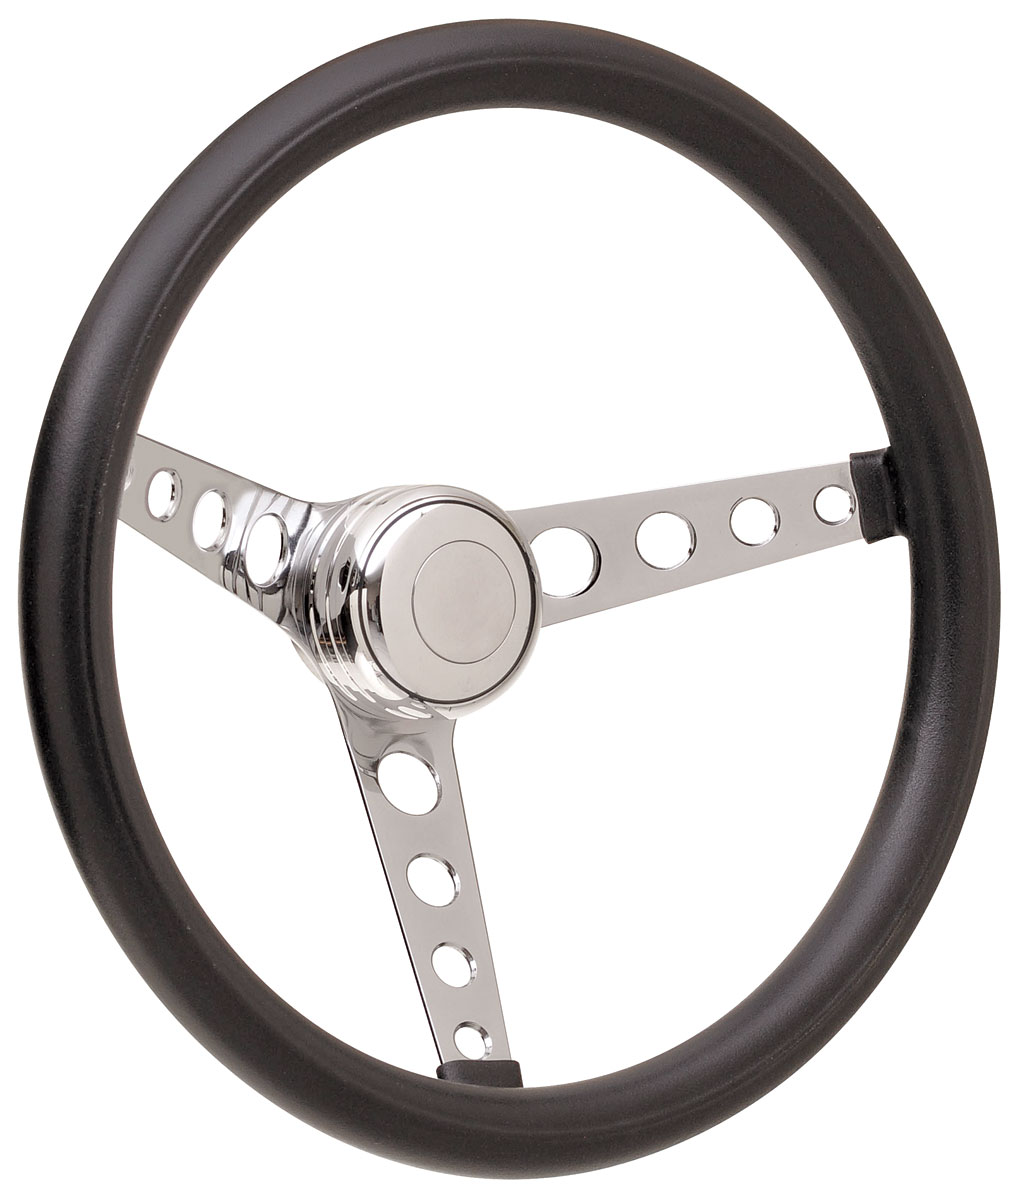 Photo of Bonneville Steering Wheel Kits, Classic Foam Tall Cap - Polished with polished center, early mount